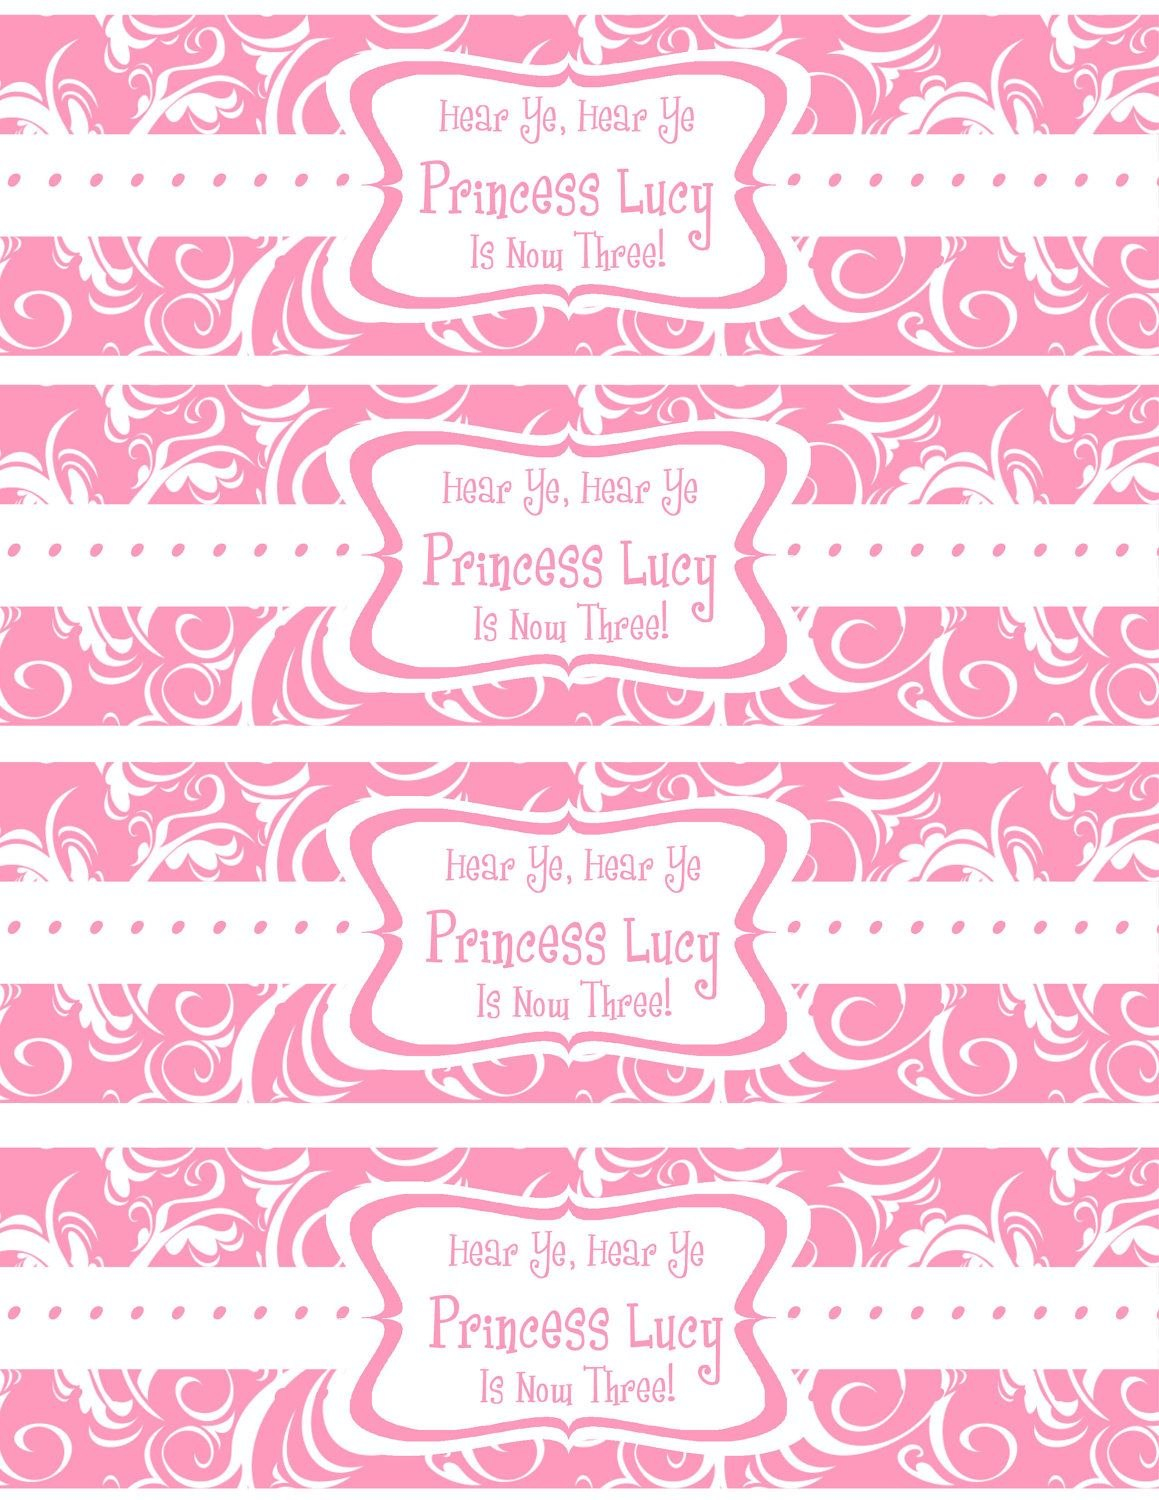 Free Printable Water Bottle Labels Template  Kreatief  Water With Water Bottle Label Template Free Word